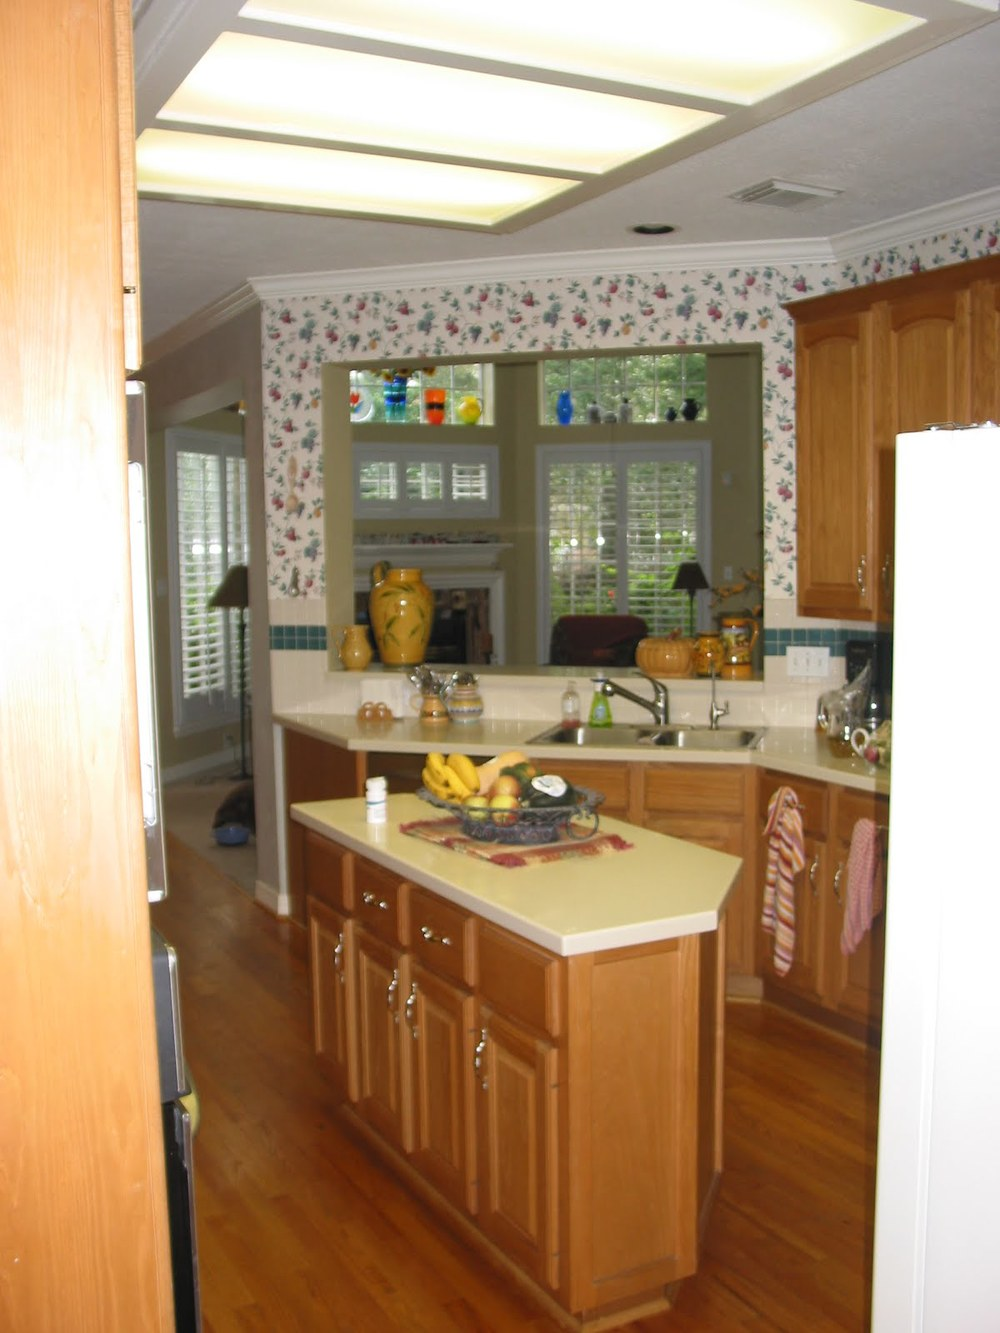 An oddly-shaped kitchen island | Why it's one of my BIGGEST pet ...